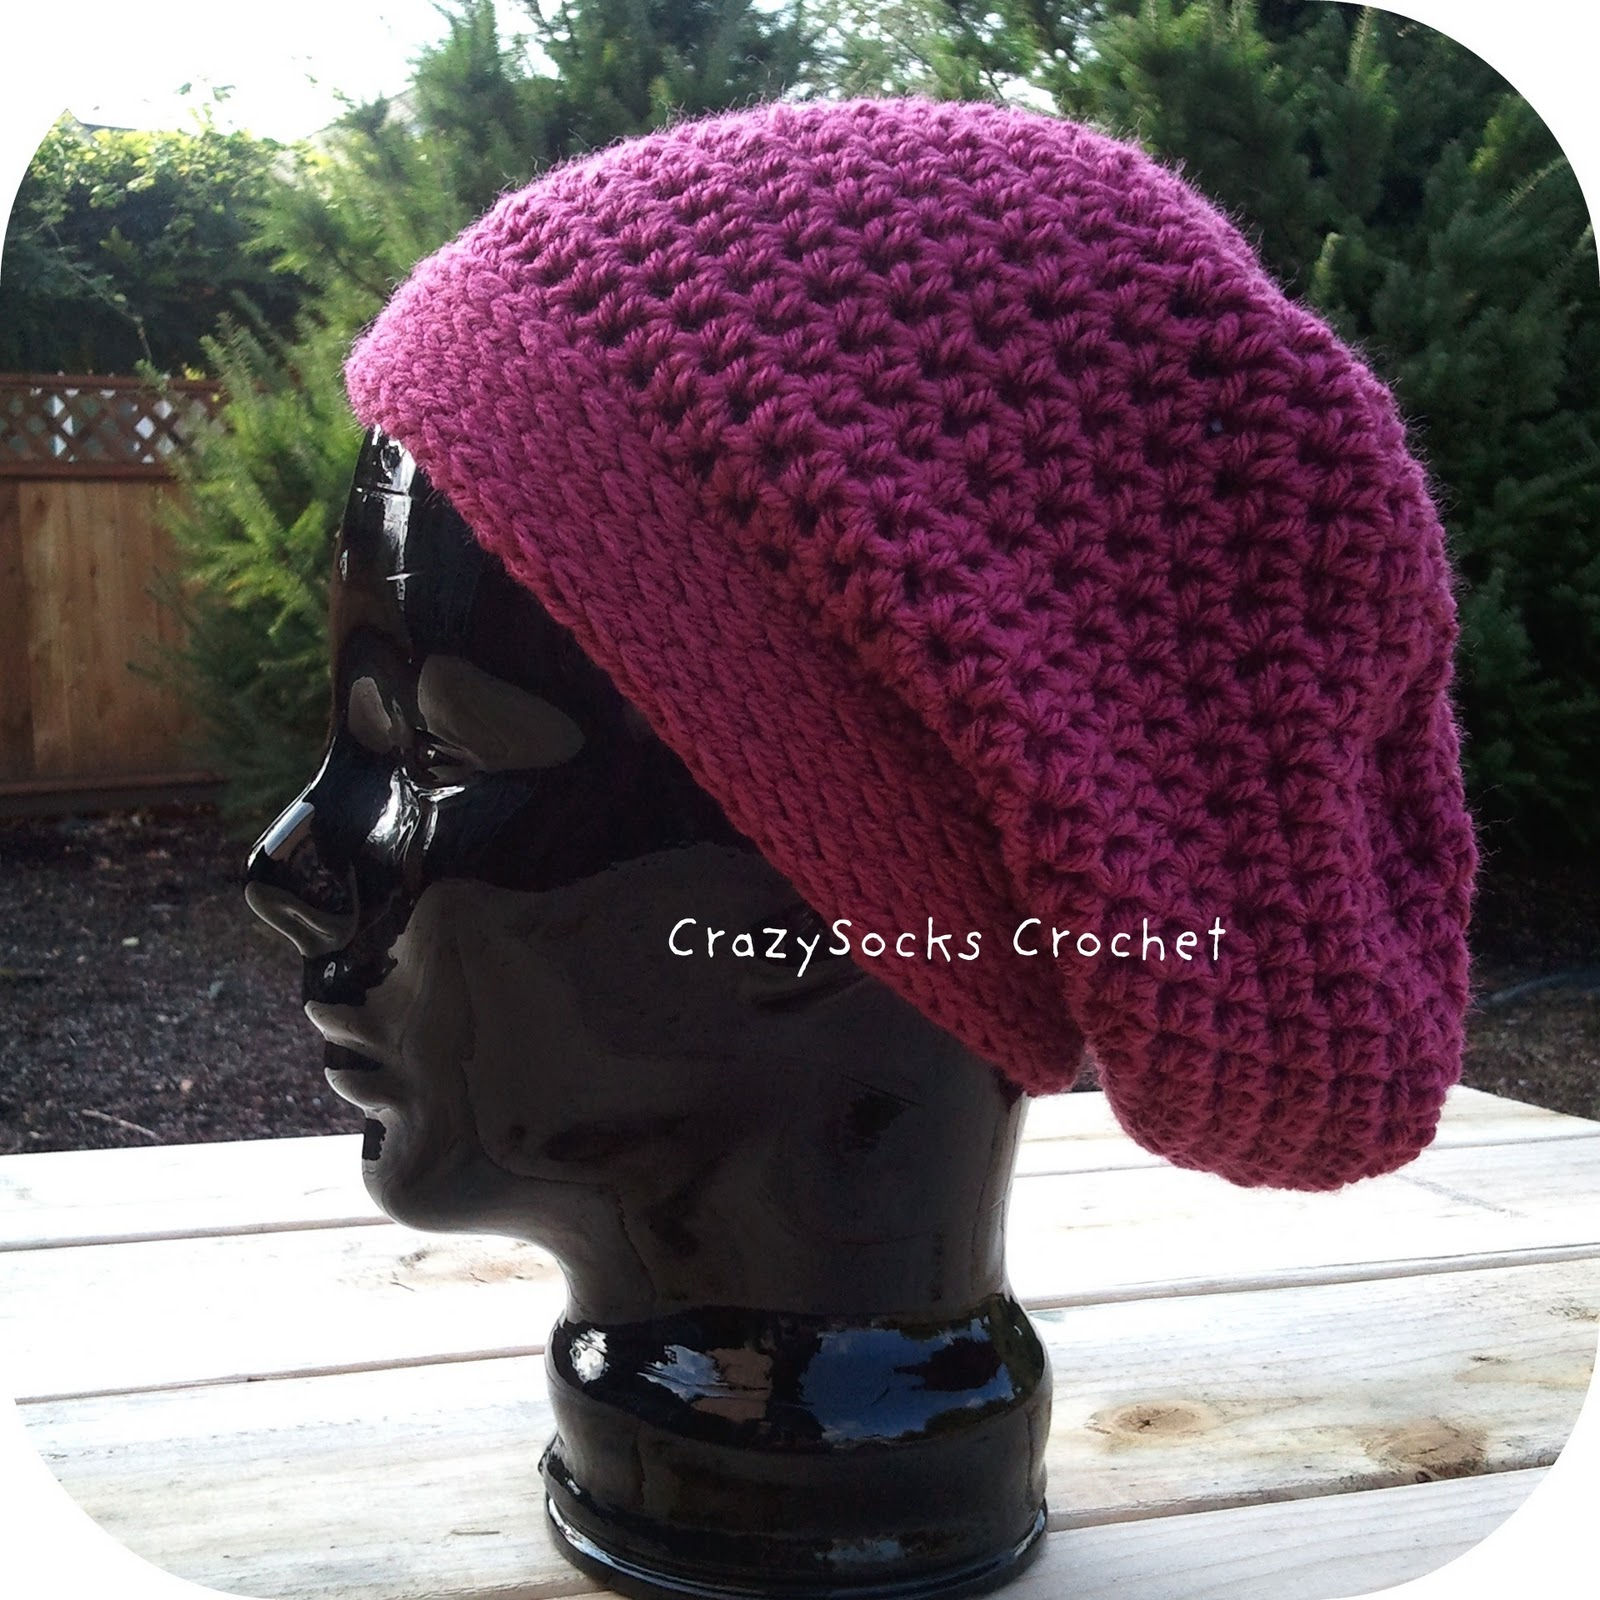 Over 100 Free Crocheted Baby Hat Patterns at AllCrafts